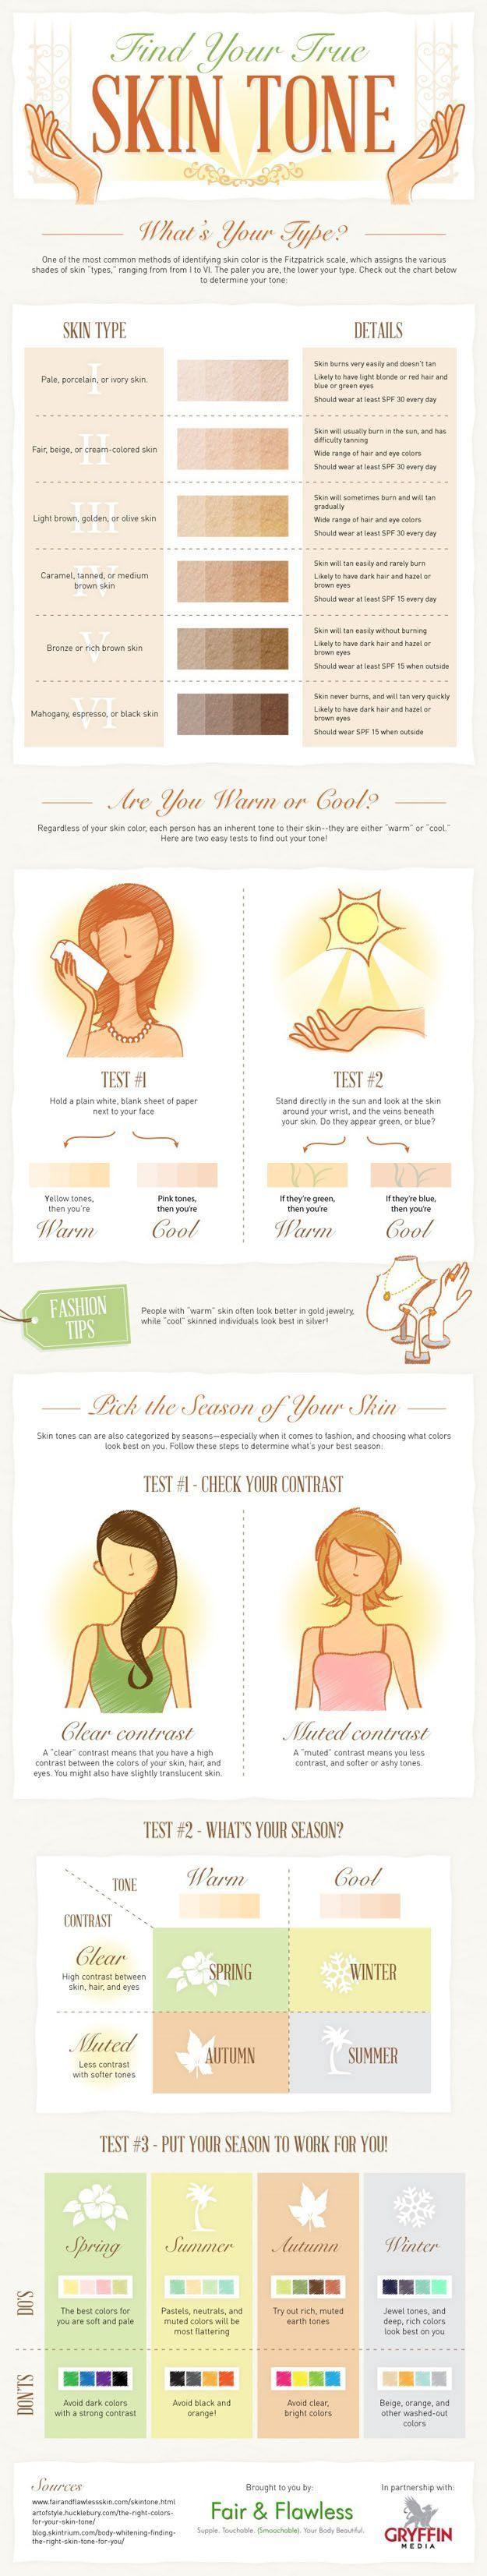 How to Find Your Skin Tone | The Best Chart & Makeup Tips & Tricks by Makeup Tutorials http://makeuptutorials.com/makeup-tutorials-beauty-tips/